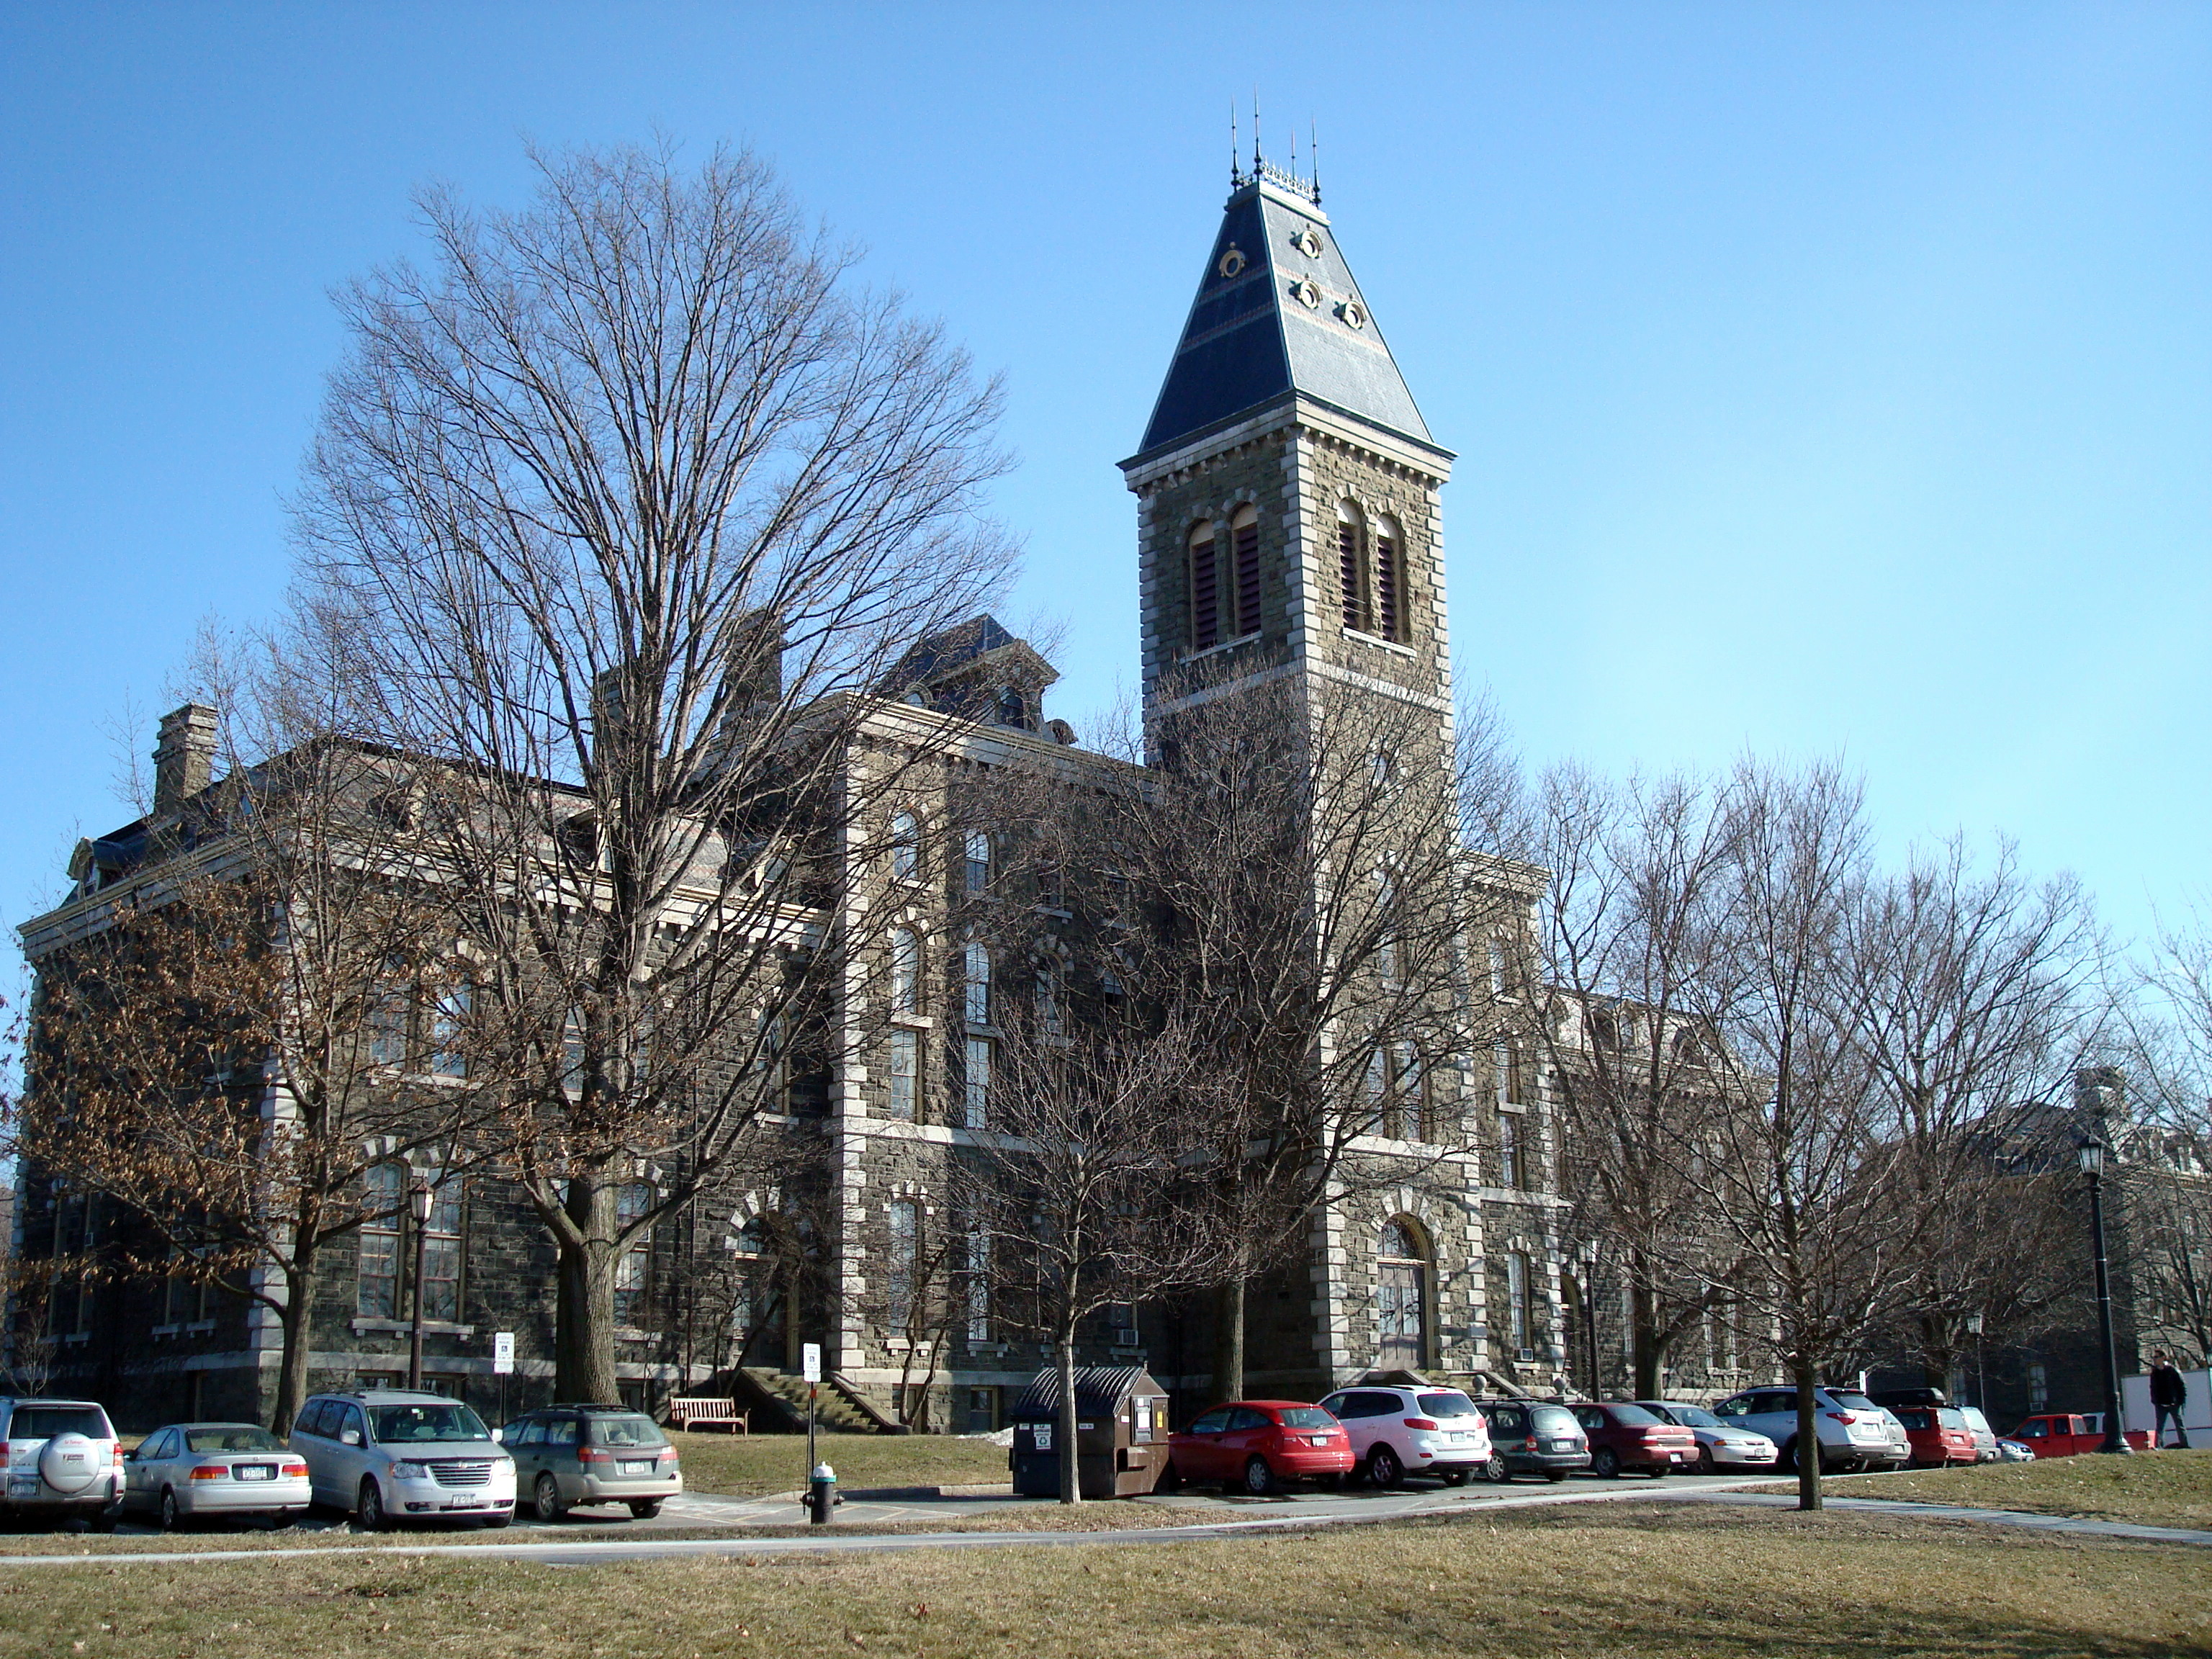 File:Cornell McGraw Hall 1.jpg - Wikipedia, the free encyclopedia